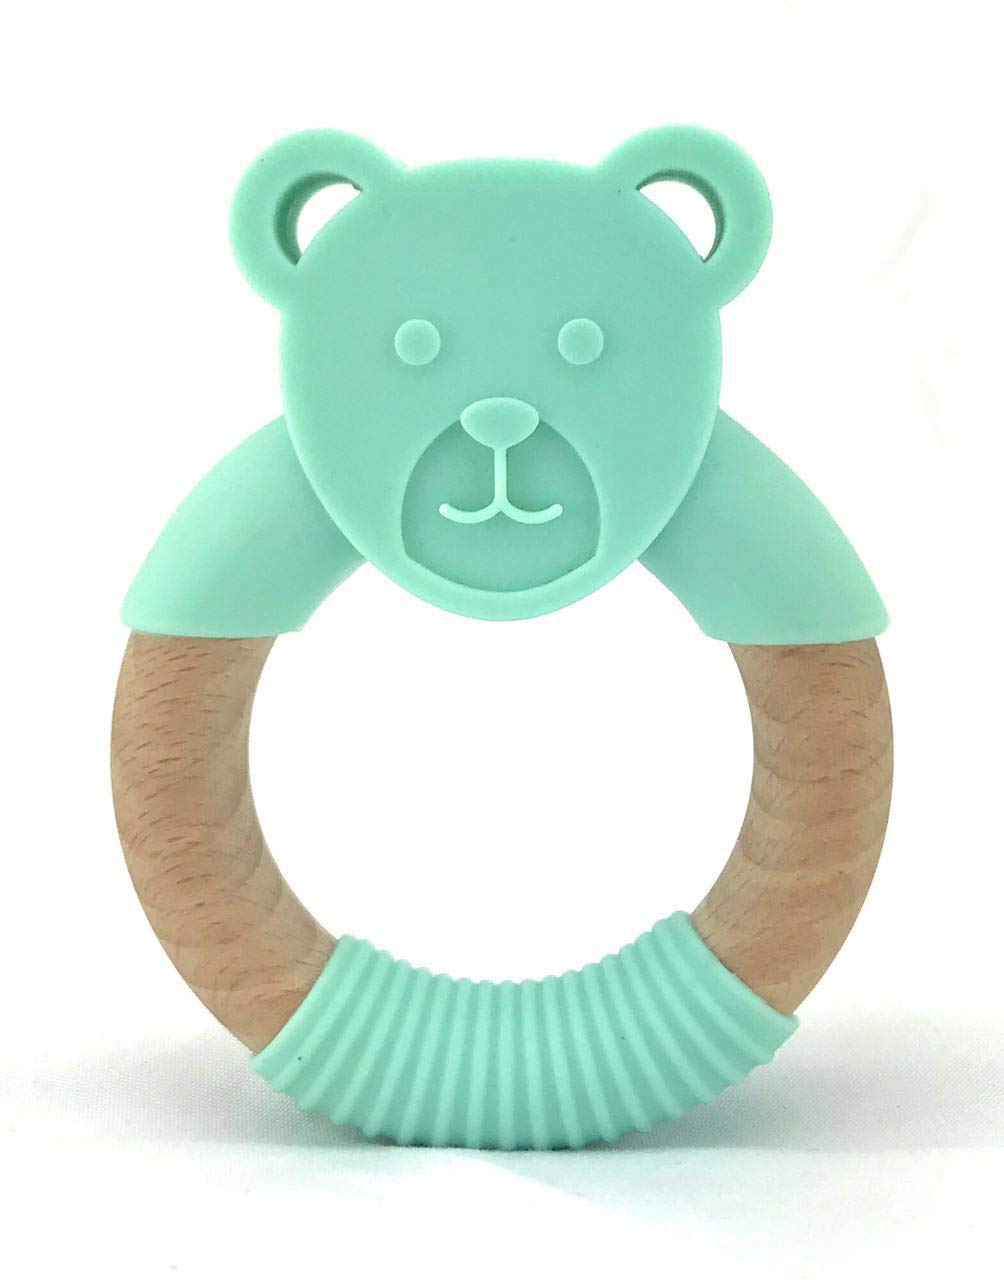 Oso Infantactical Organic Natural Beech Wood /& Bear Silicone Teething Ring 100/% BPA Free Silicone Wood Teether Teething Pain Relief Toy